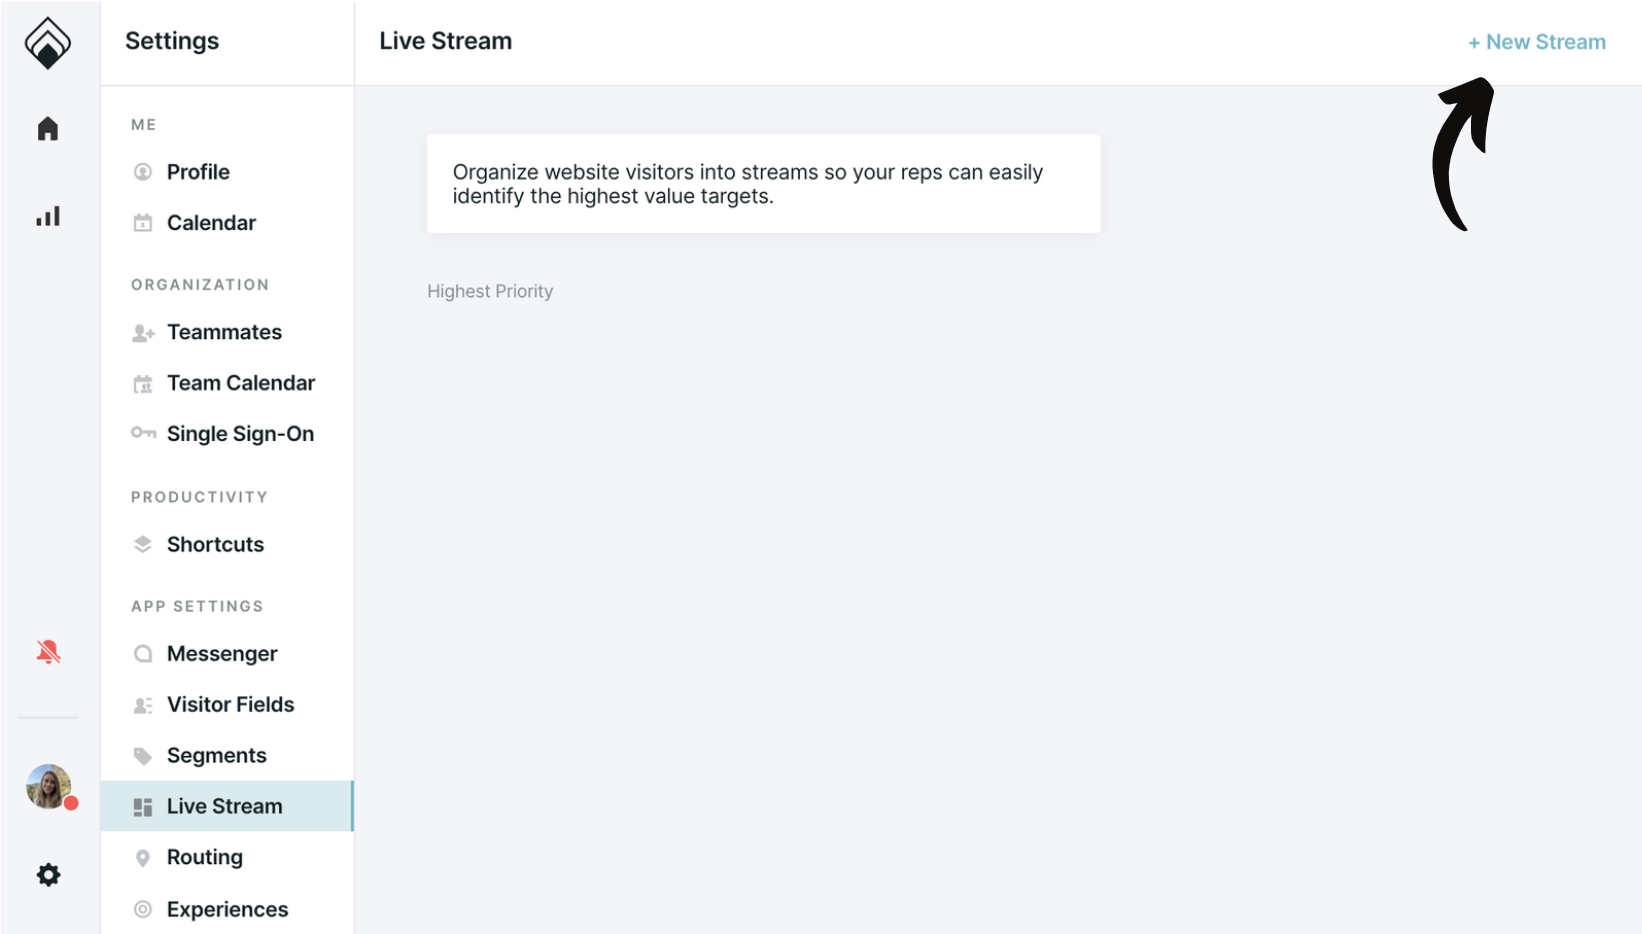 The Live Stream Section of the Account Settings with an arrow pointing to +New Stream